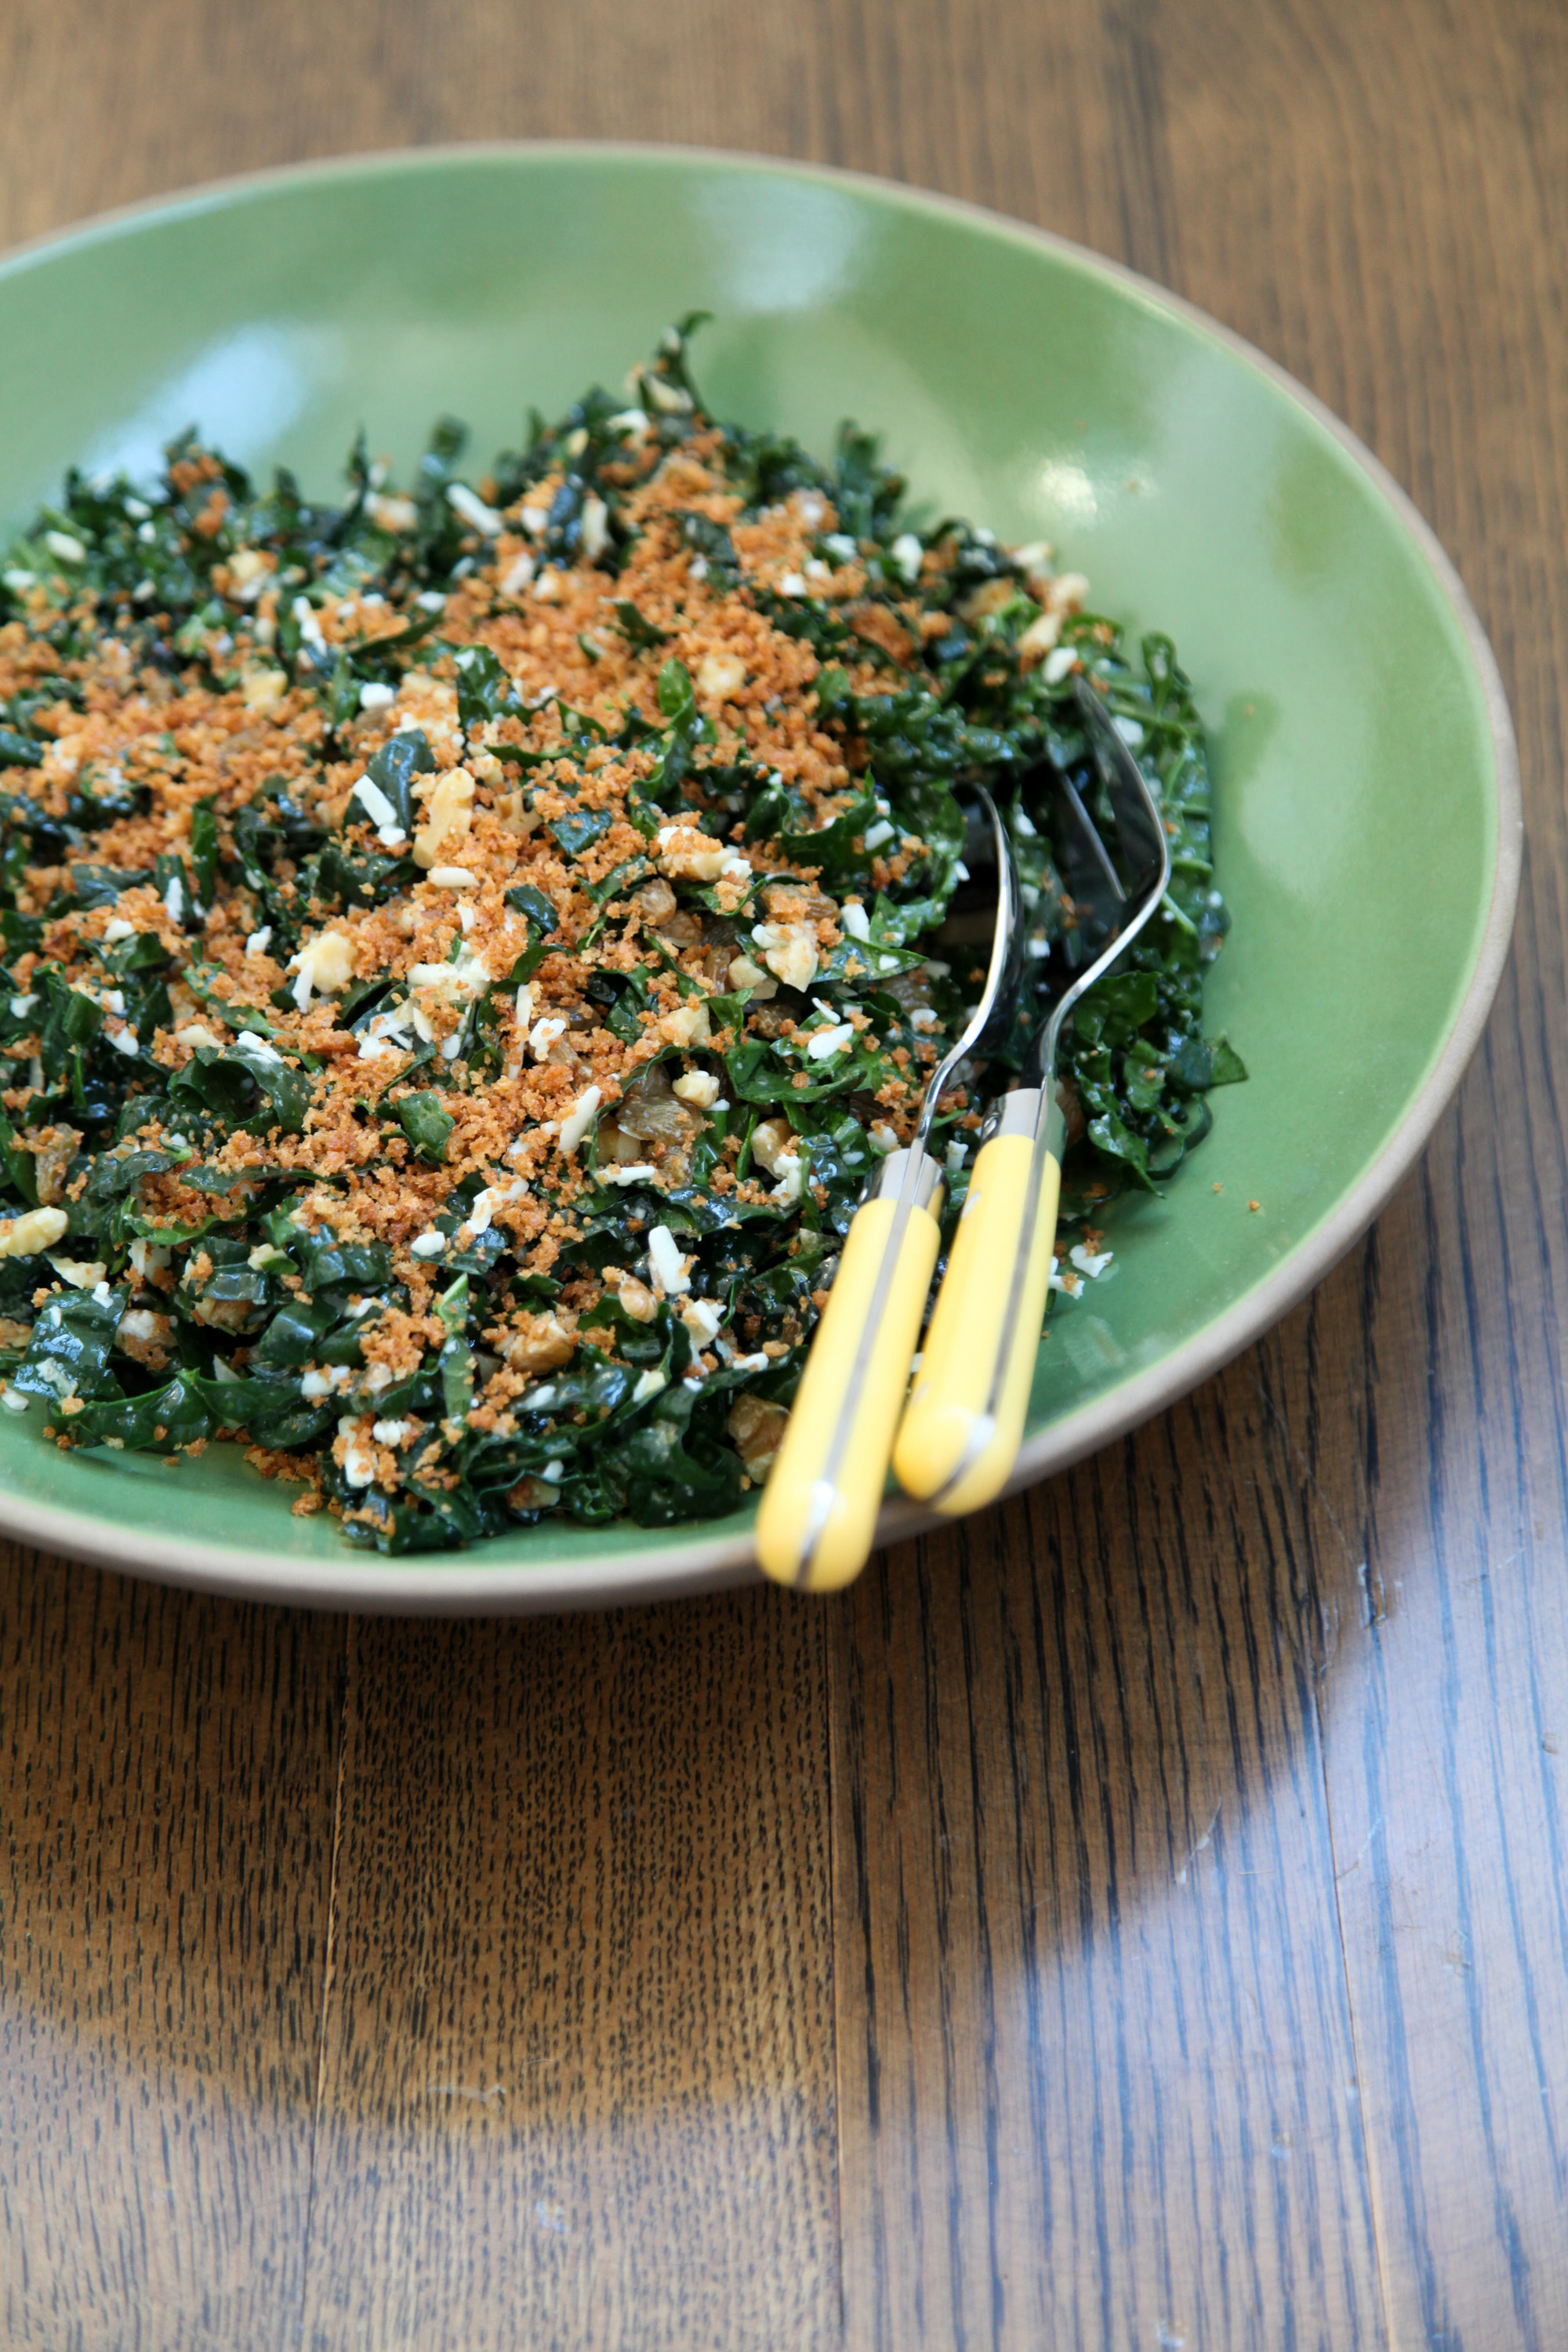 Kale Salad With Walnuts, Golden Raisins, and Pecorino | amodestfeast.com | @amodestfeast